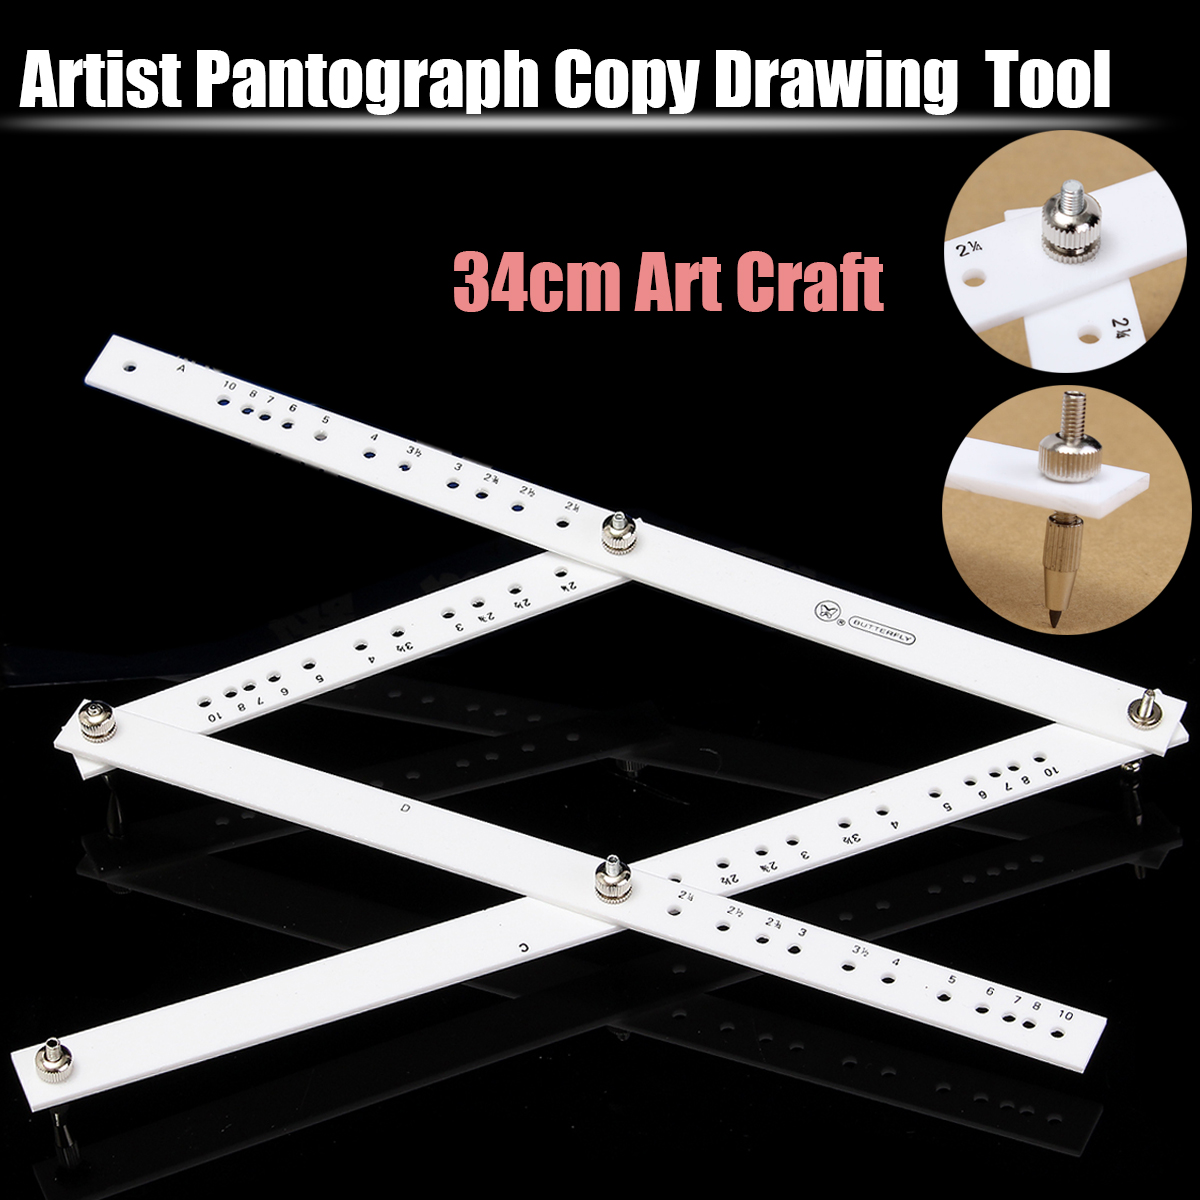 Kicute 34cm Scale Drawing Ruler Artist Pantograph Folding Ruler Reducer Enlarger Tool Art Craft For Office School Supplies